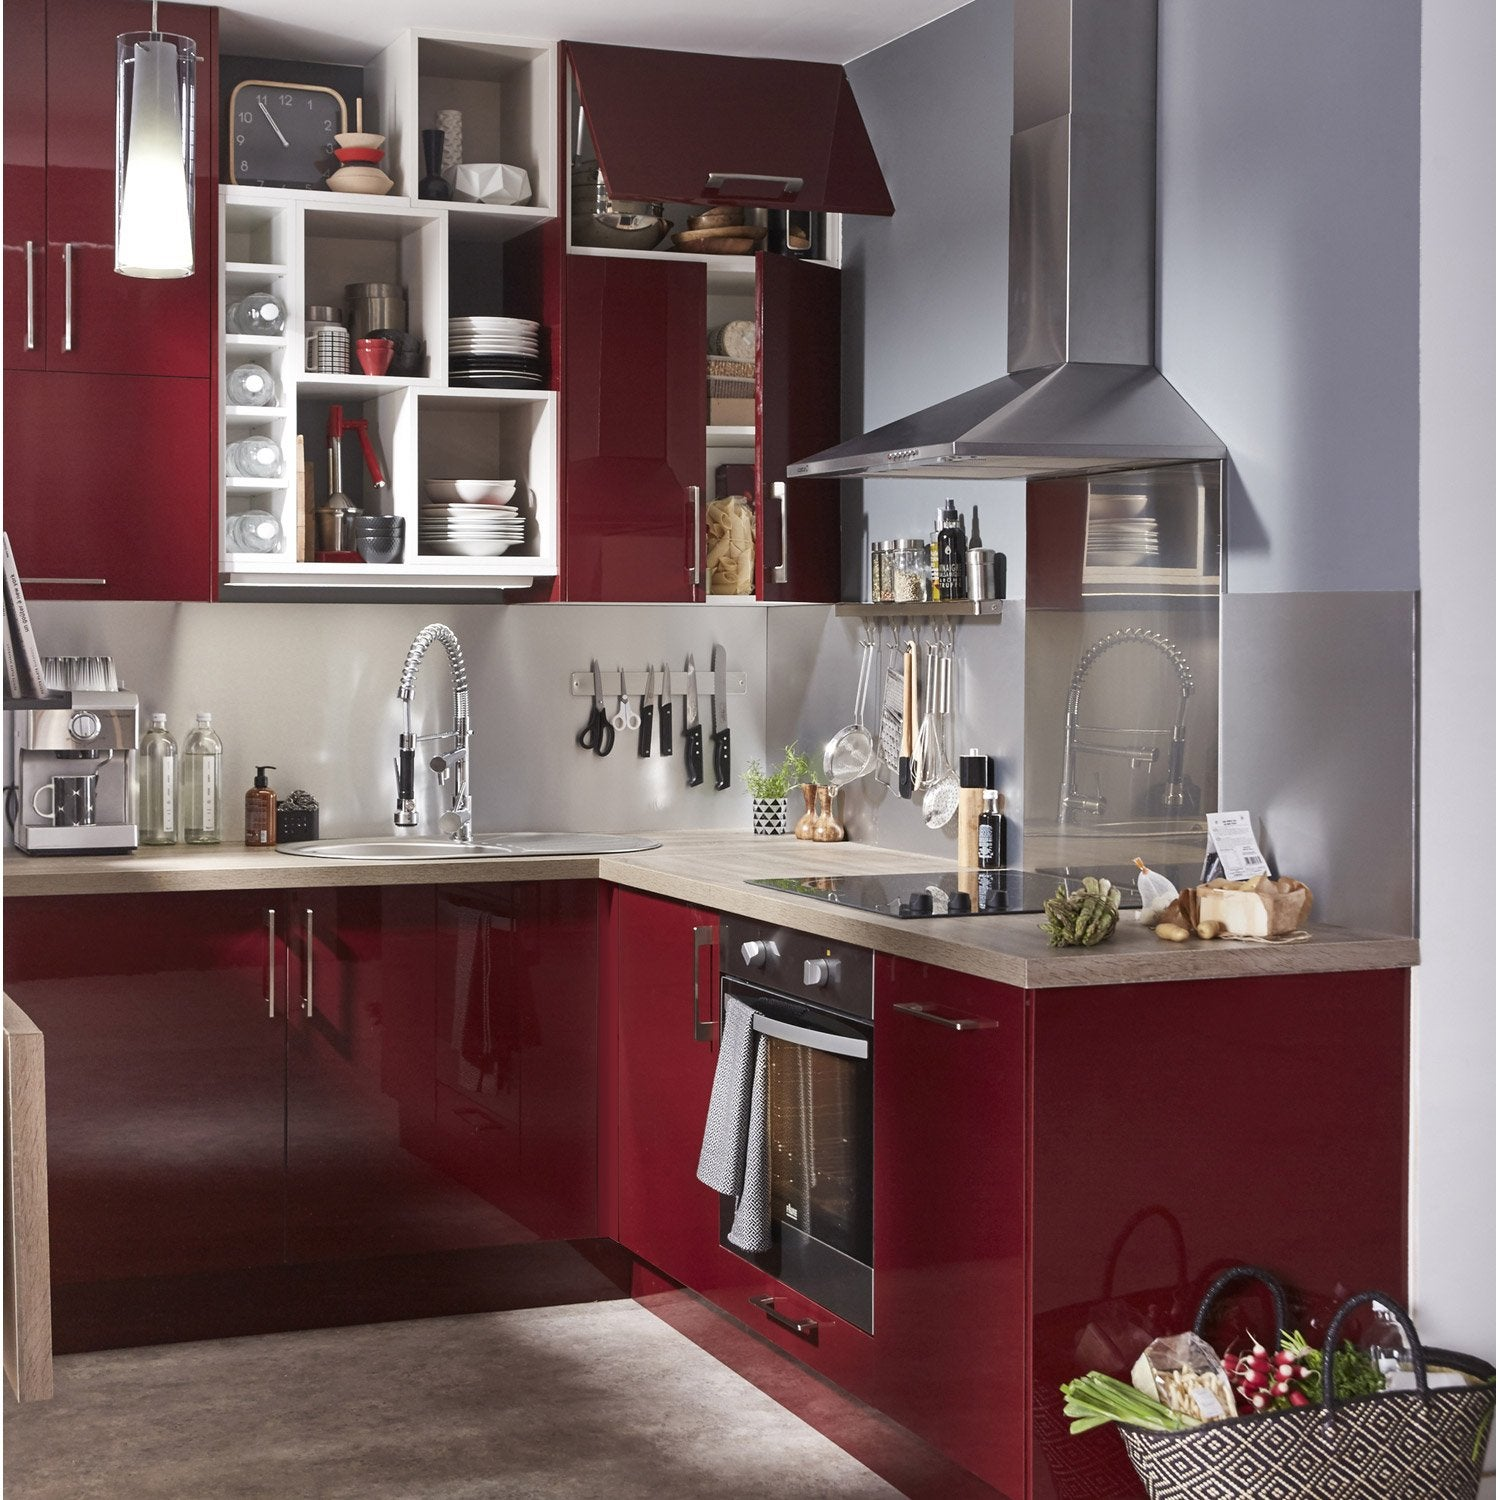 Meuble de cuisine rouge delinia griotte leroy merlin for Portes elements cuisine leroy merlin